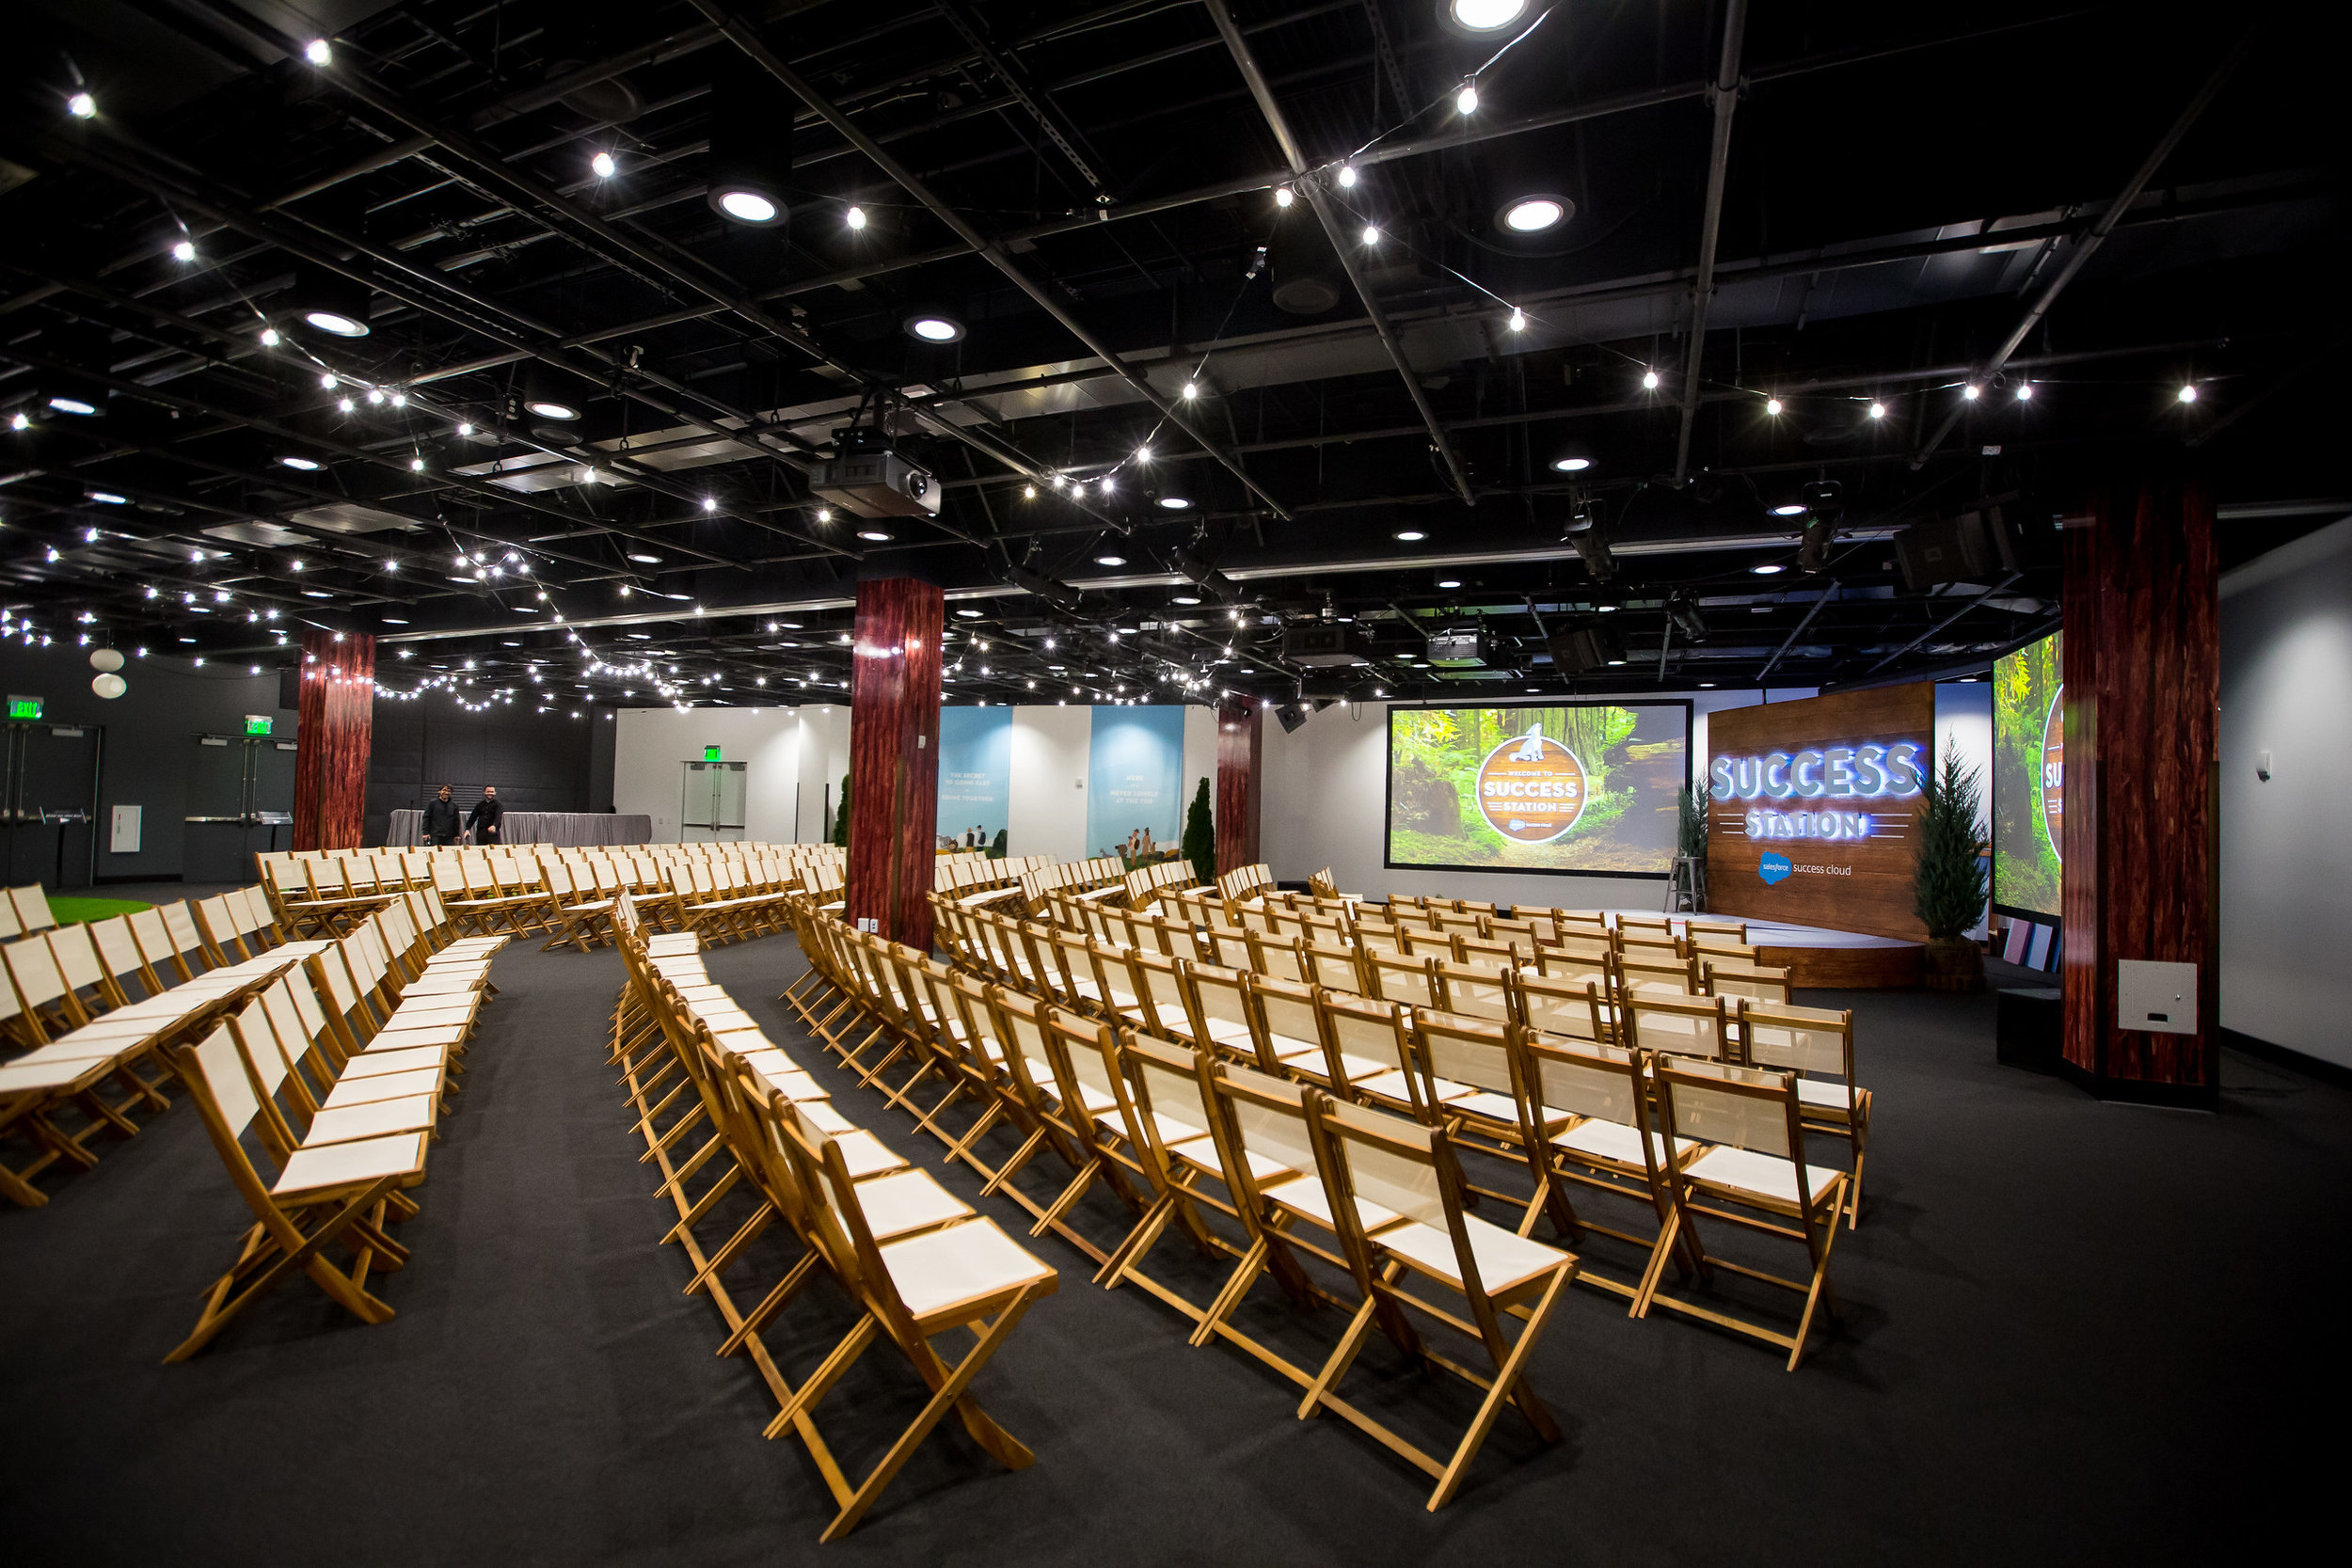 0151 Bespoke Dreamforce Monday-X5-X5.jpg